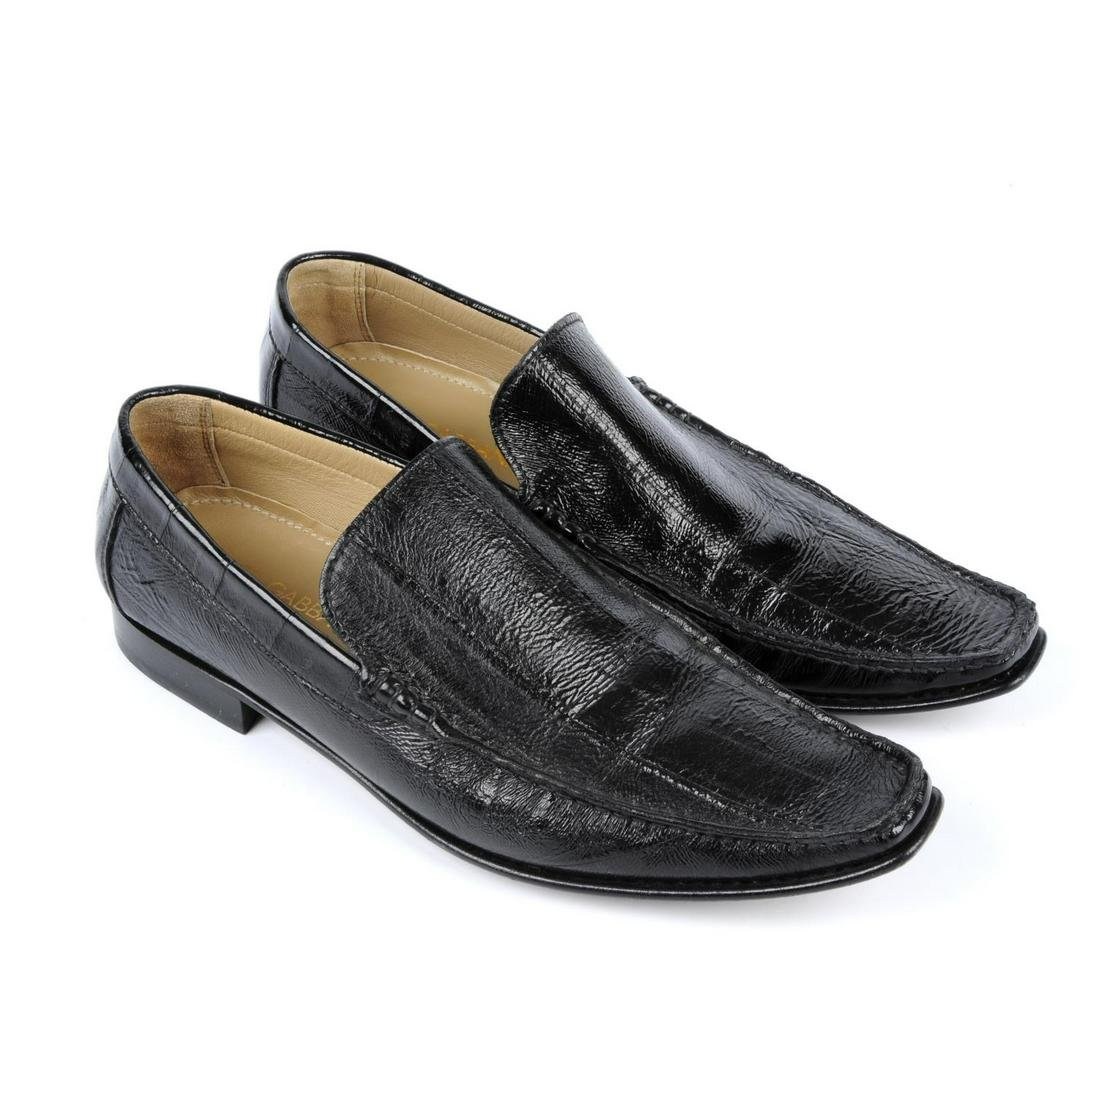 DOLCE & GABBANA - a pair of men's black loafers.